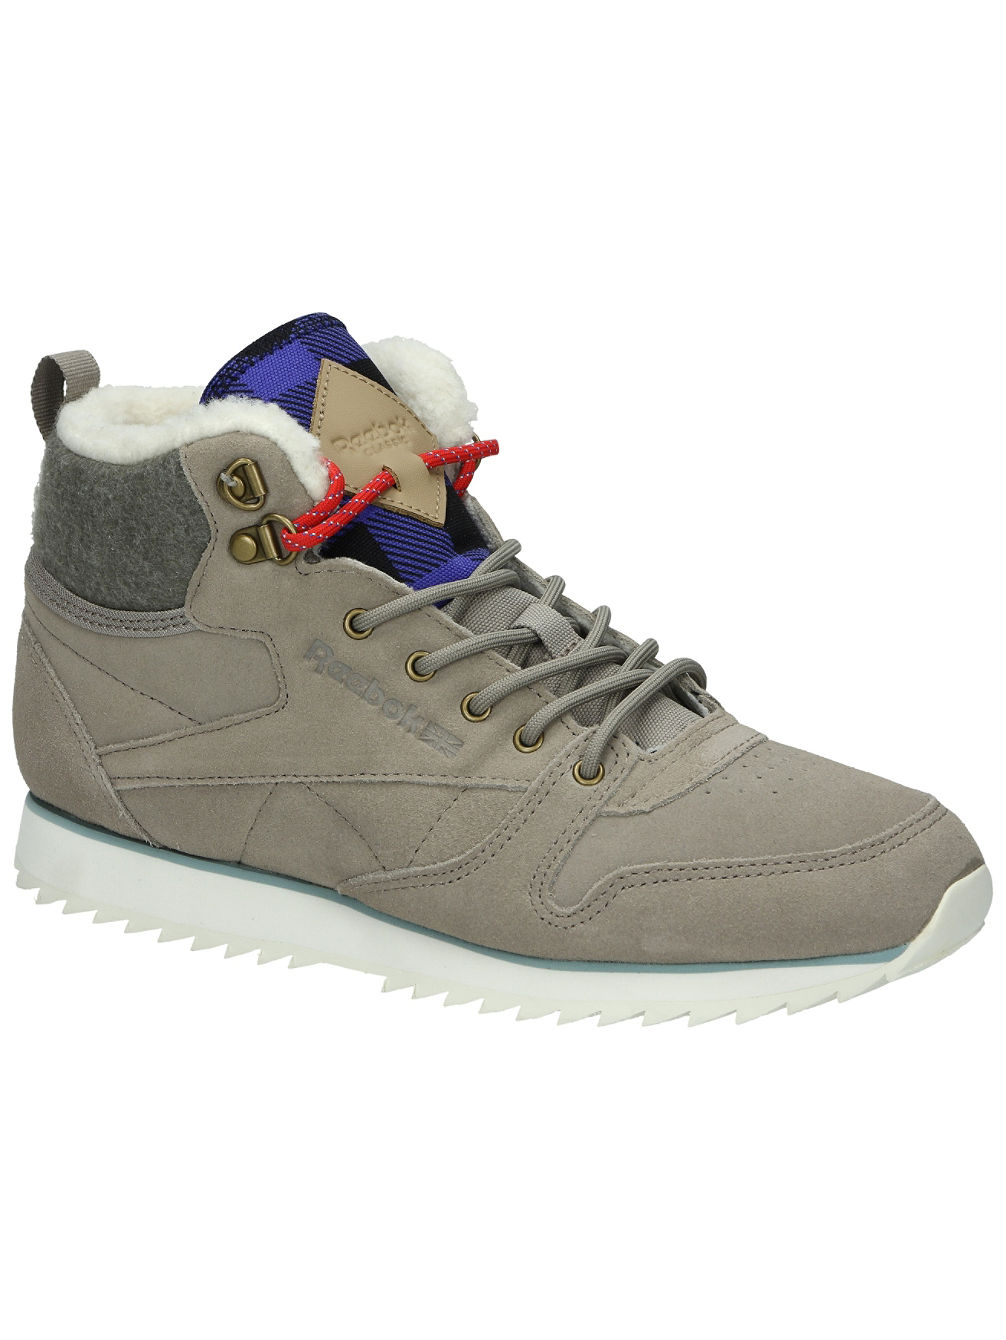 73d9418b18e Buy Reebok Classic Leather Mid Outdoor Shoes online at Blue Tomato